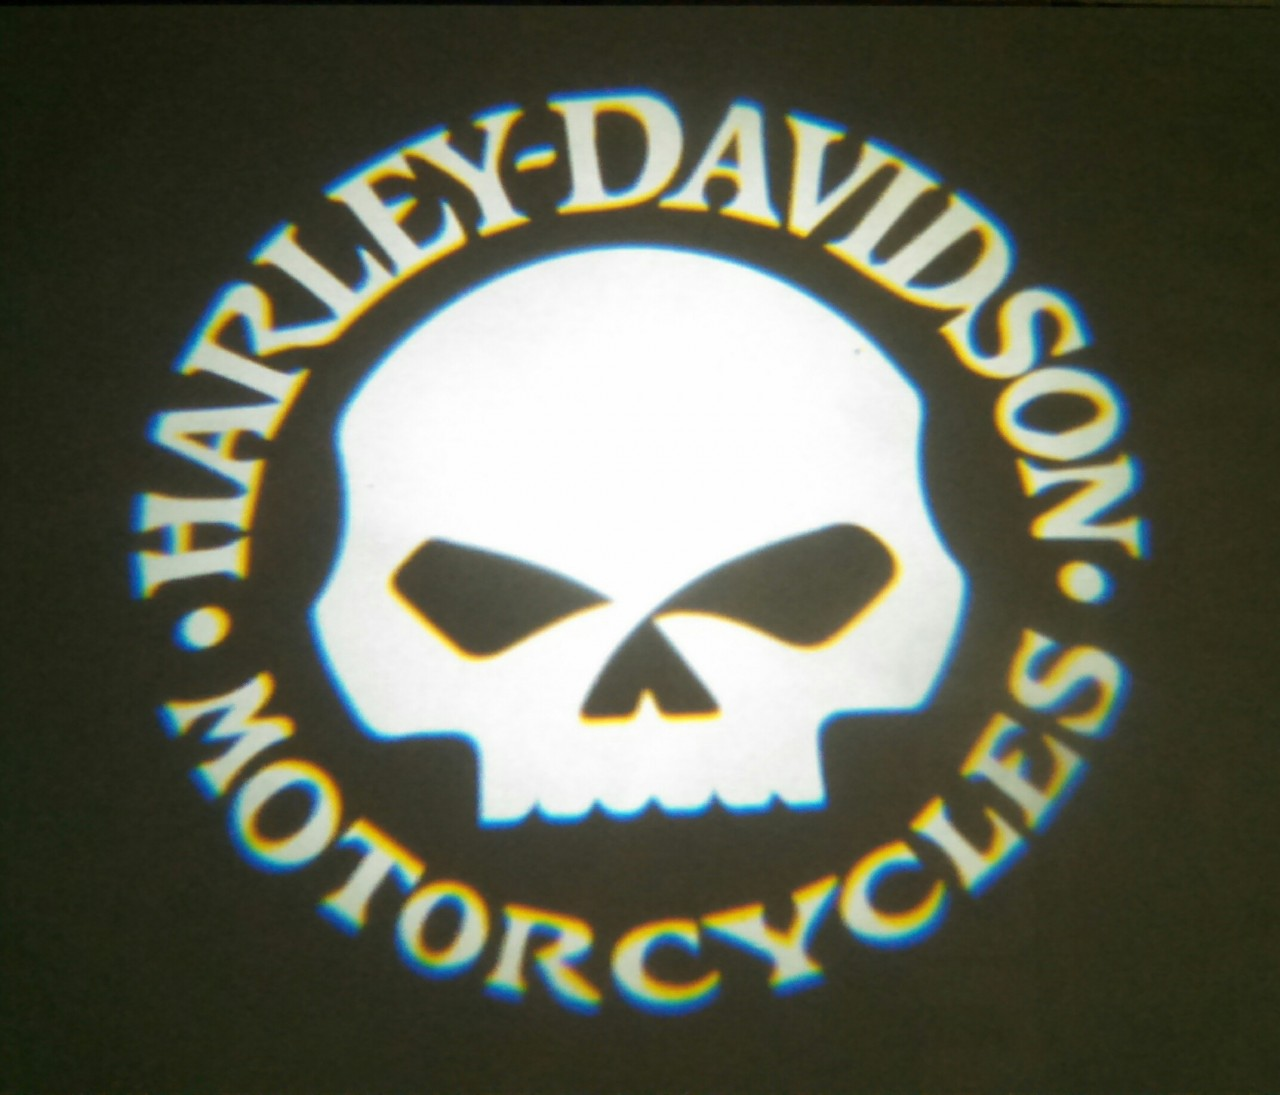 Harley Davidson Willy G Hologram Fusion Light Kit